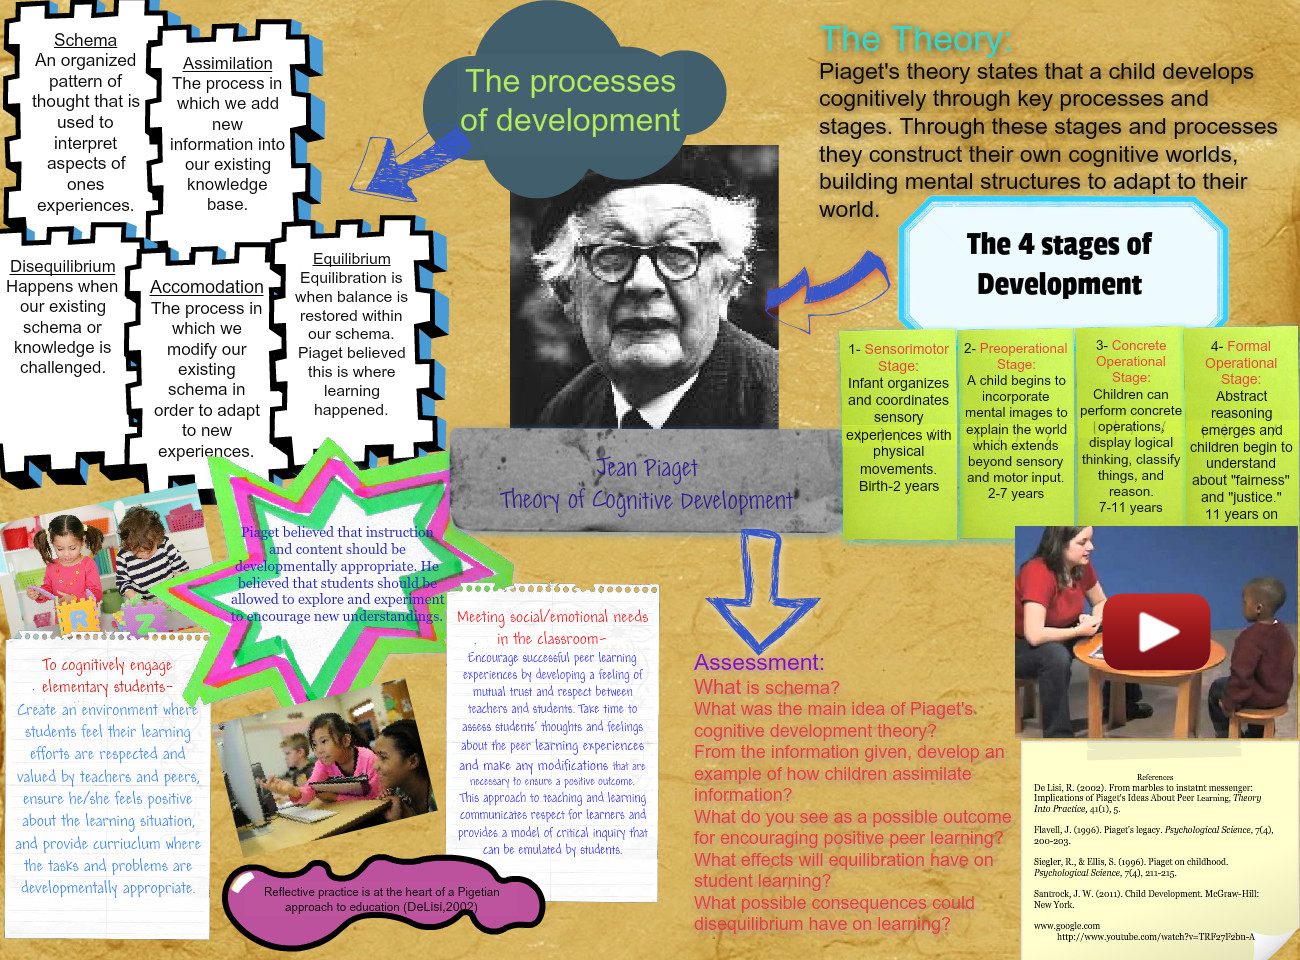 Piaget's cognitive theory